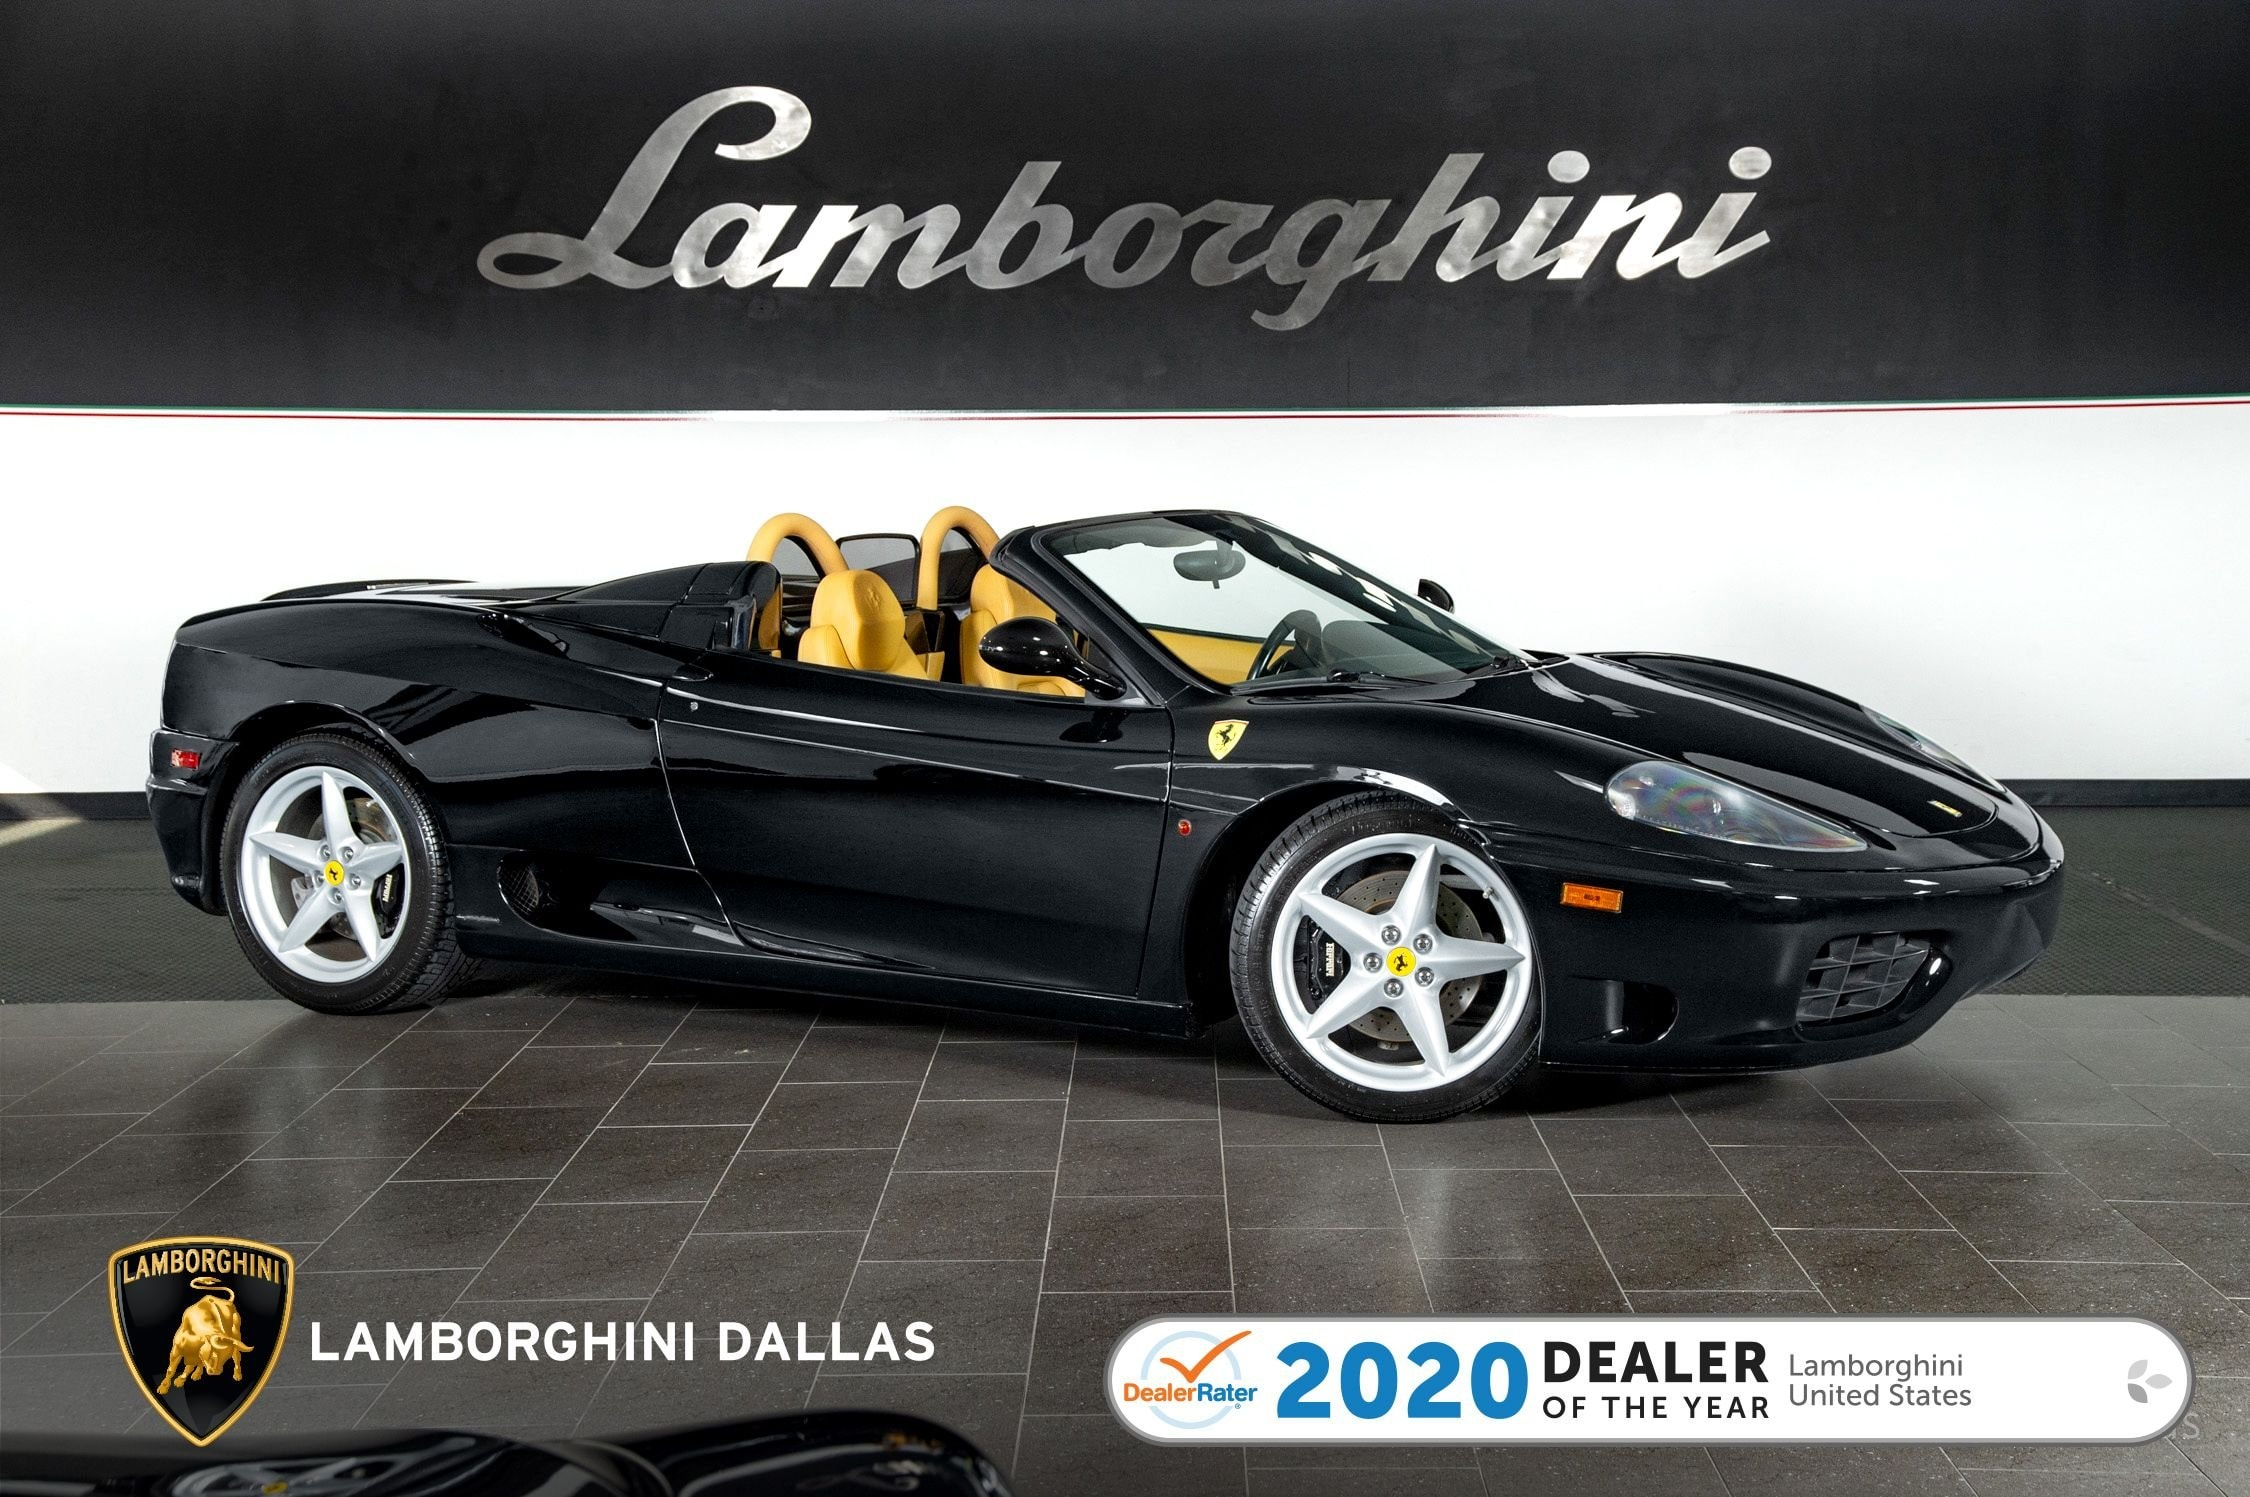 used 2004 Ferrari 360 Spider car, priced at $85,999